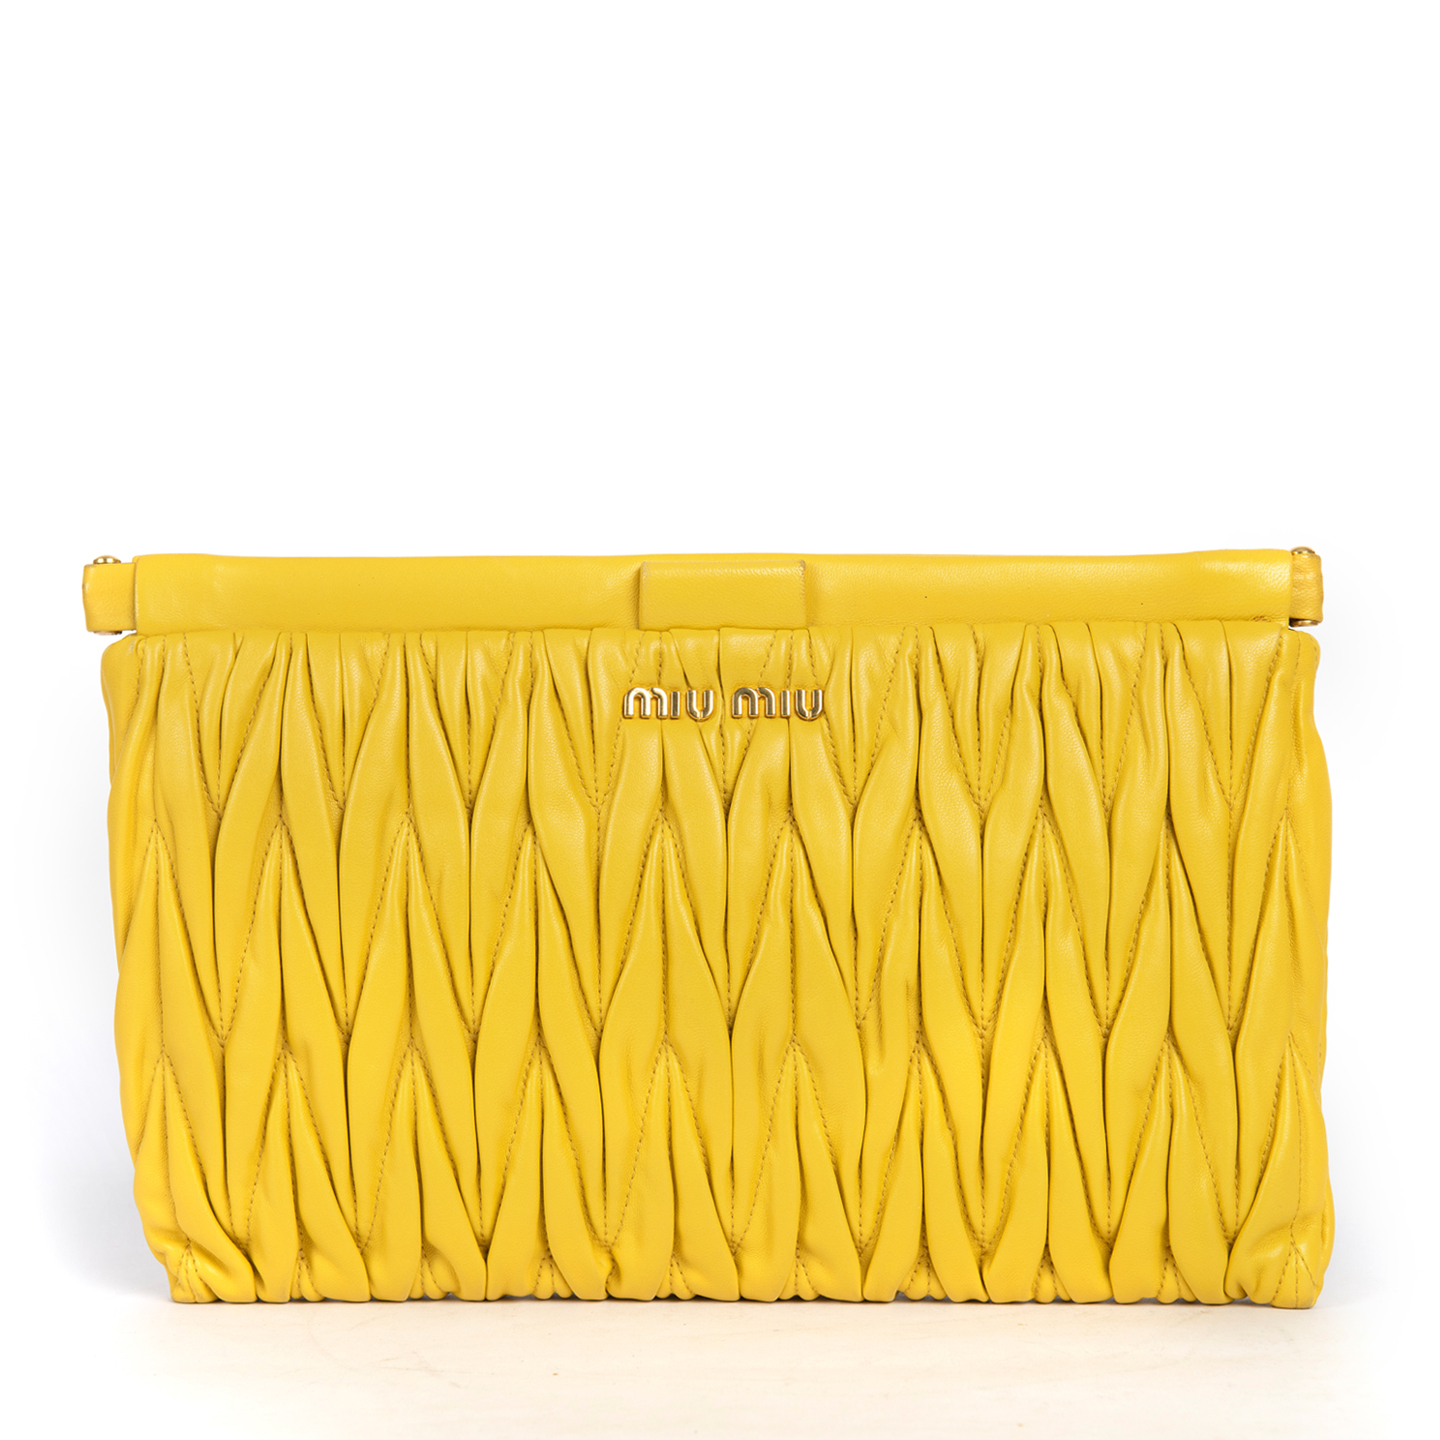 Miu Miu Yellow Matelasse Frame Clutch Bag 01